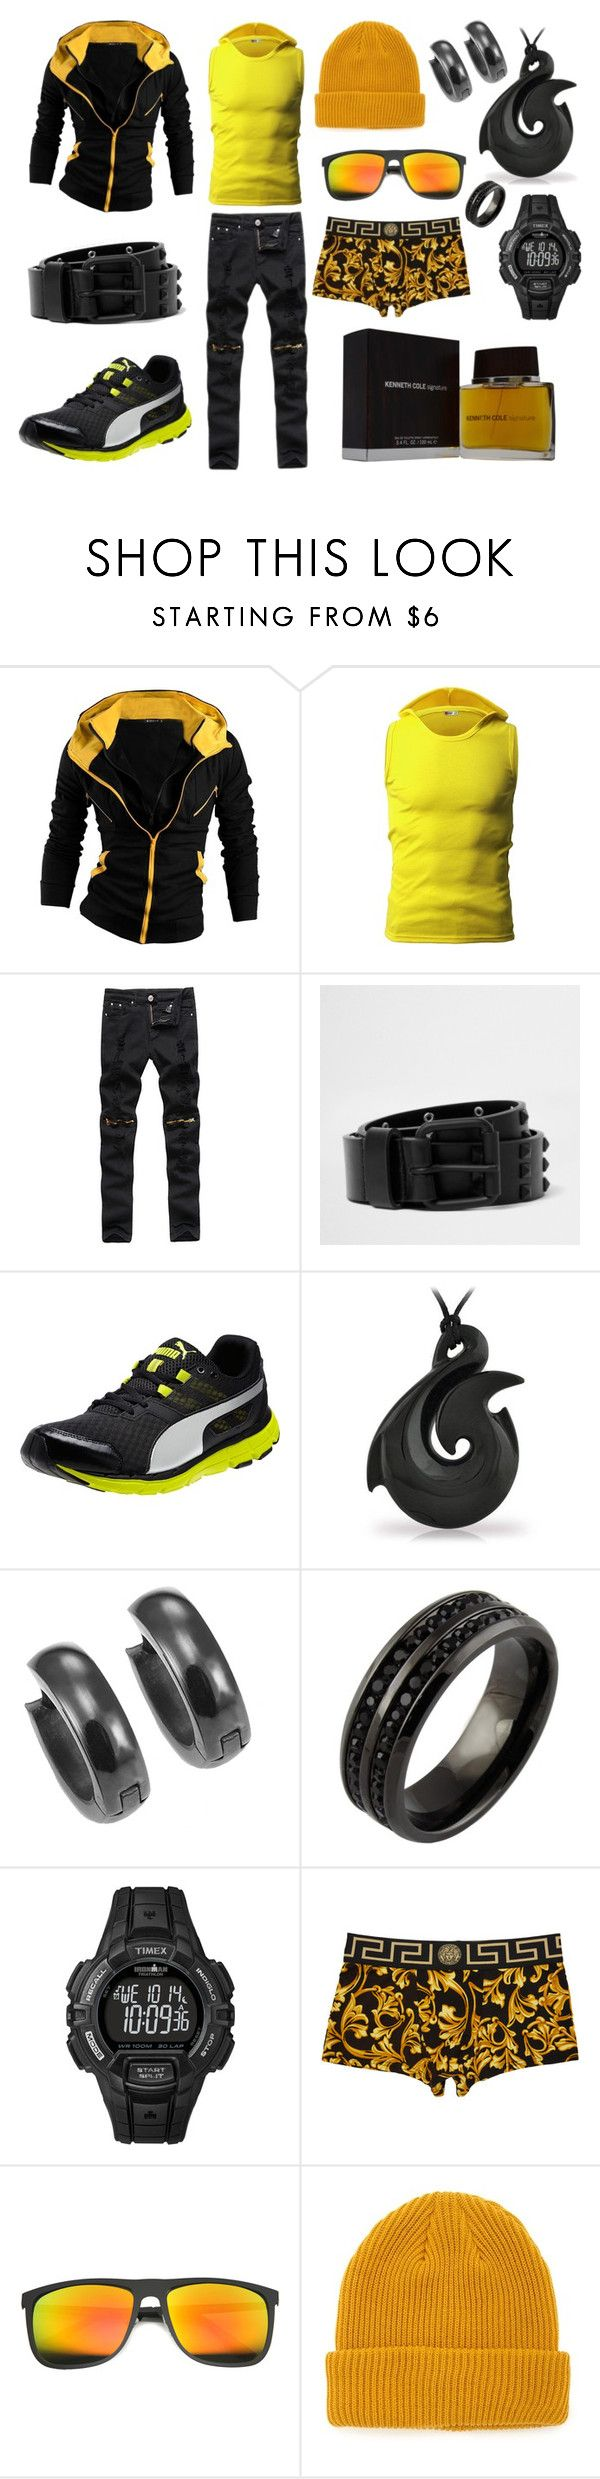 """""""Chase 203"""" by vipersden on Polyvore featuring River Island, Puma, Timex, Versace, ZeroUV, 21 Men, Kenneth Cole, men's fashion and menswear"""